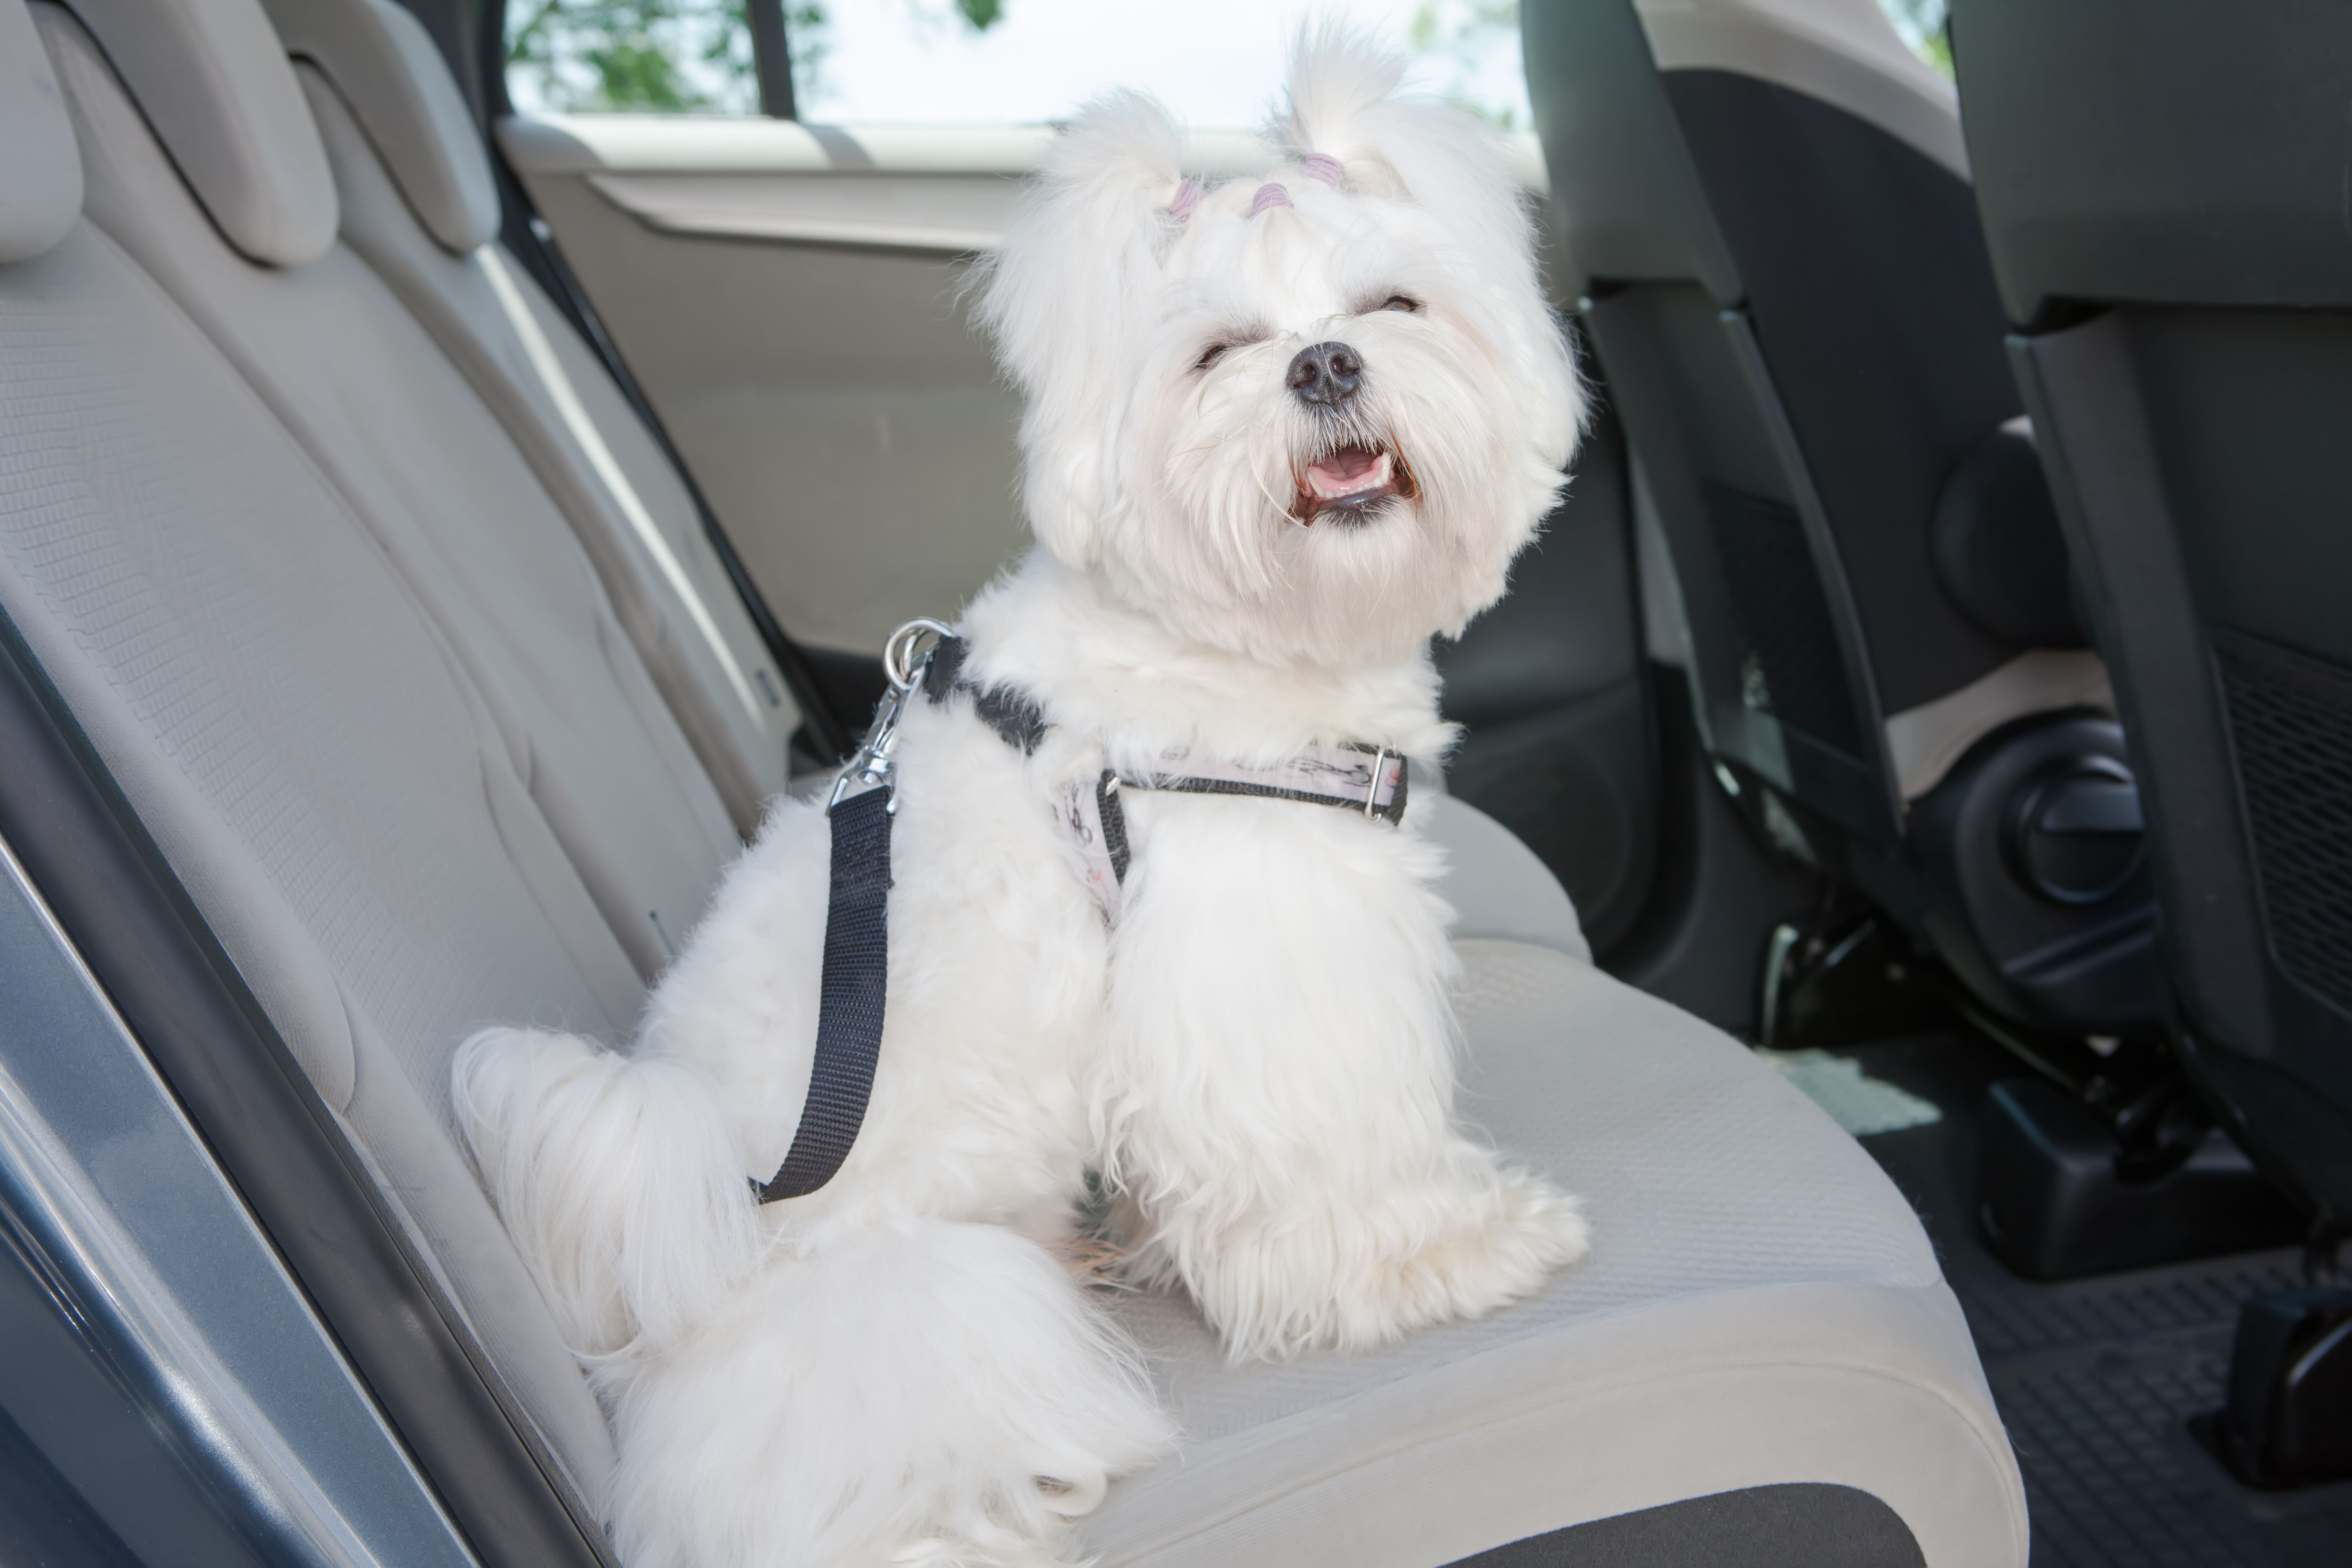 A white dog wearing a harness in the backseat of a car.